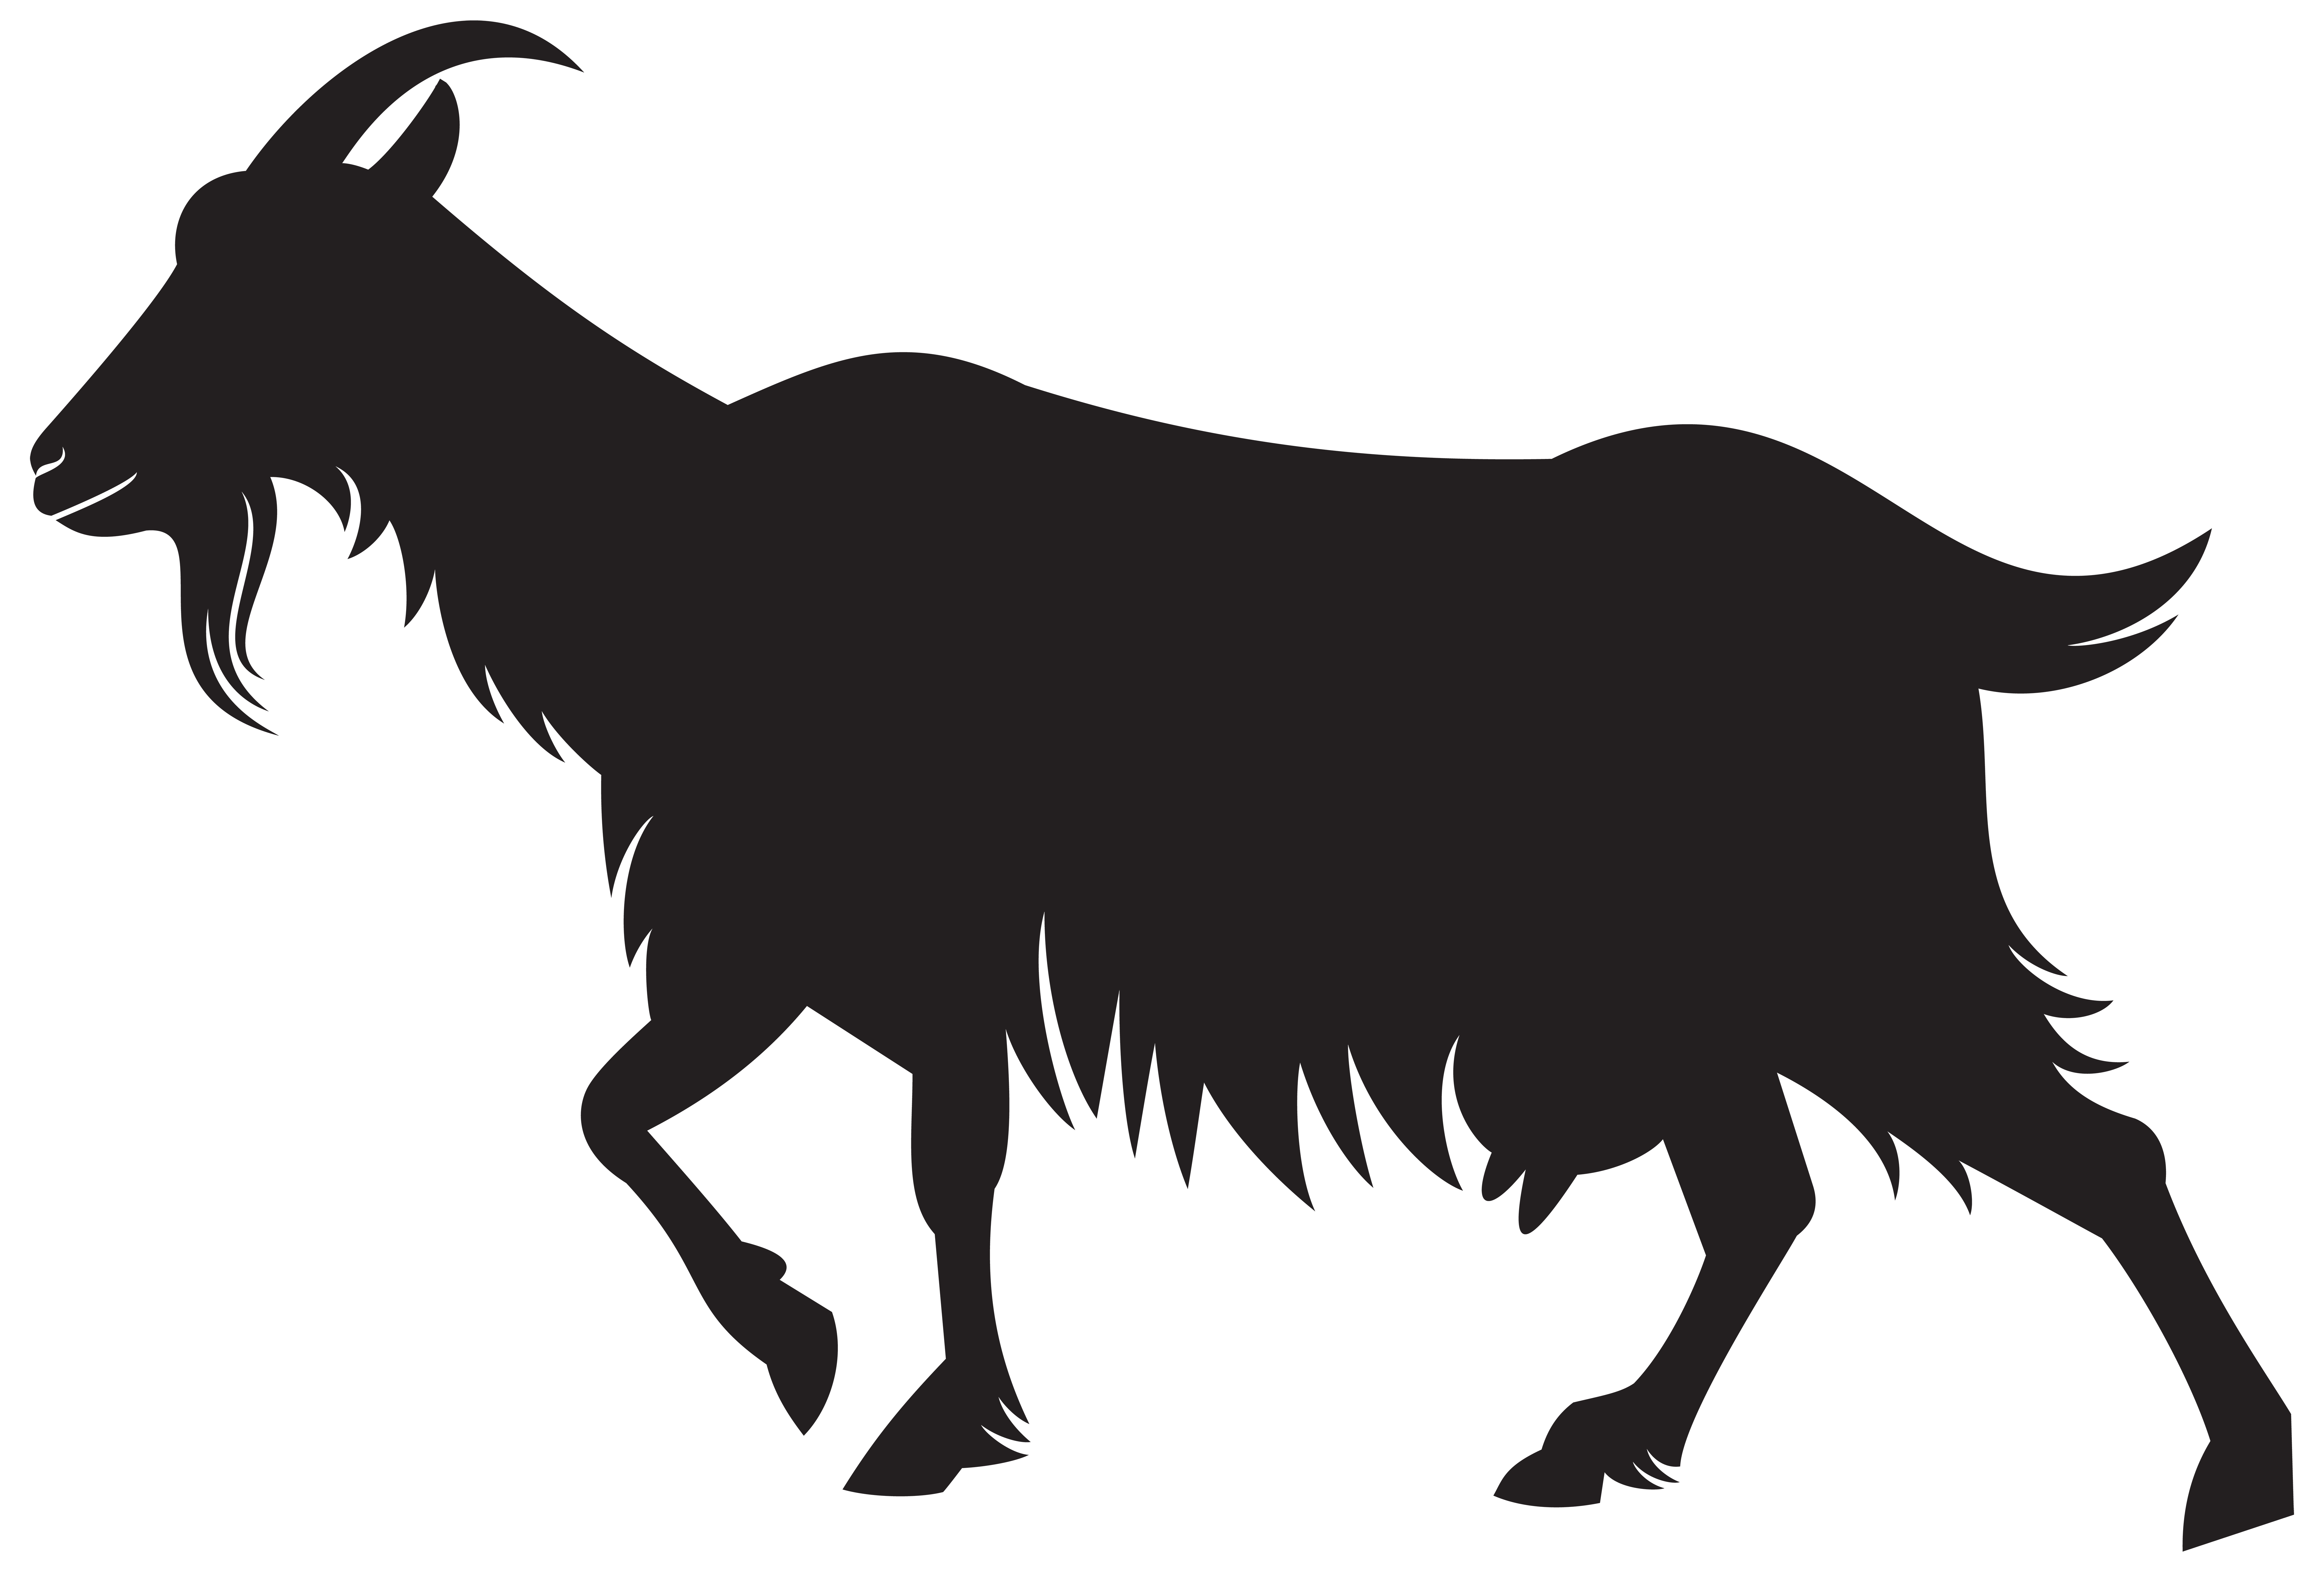 Goat silhouette png. Clip art image gallery